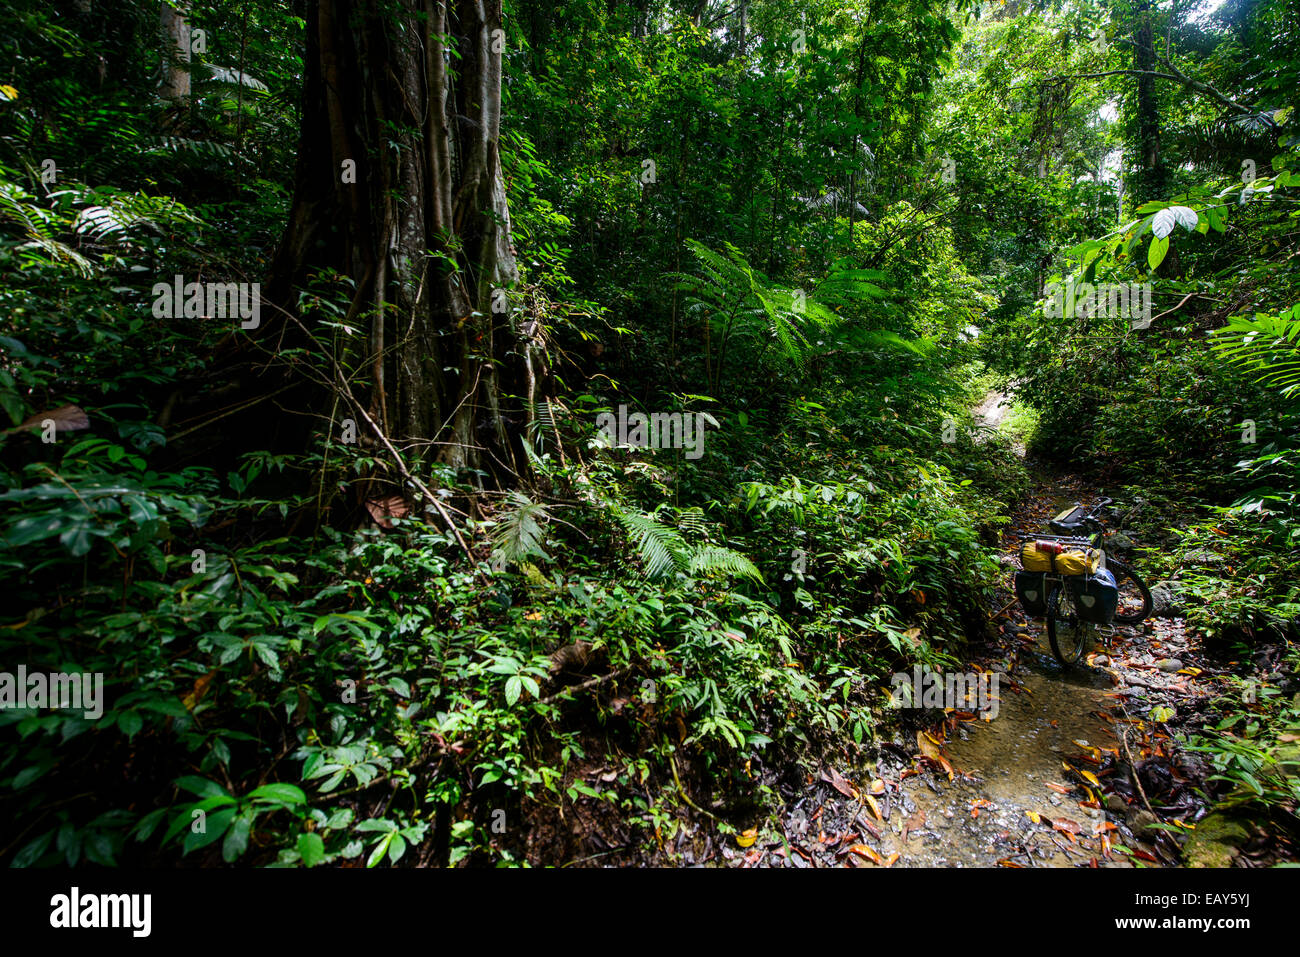 Cycling tour in the jungle, Sulawesi, Indonesia - Stock Image